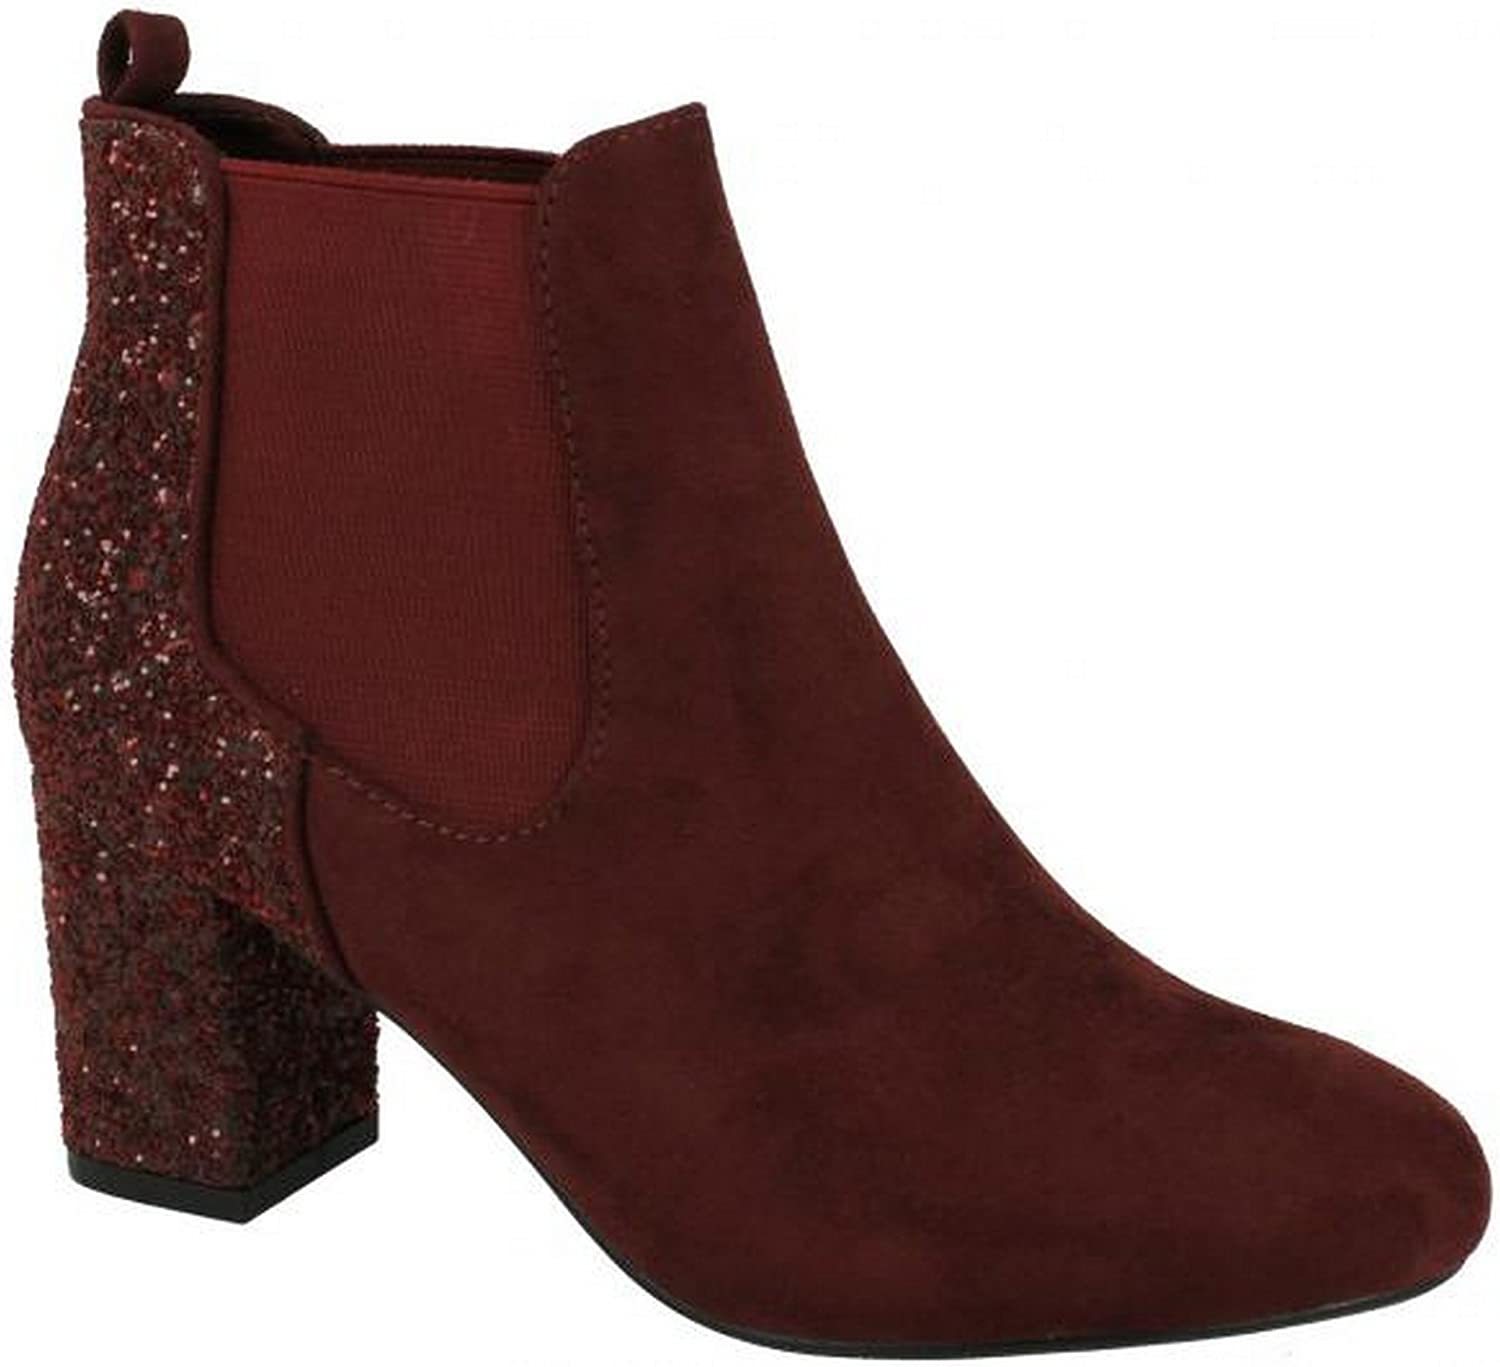 Anne Michelle Womens Ladies Glitter Effect Ankle Boots